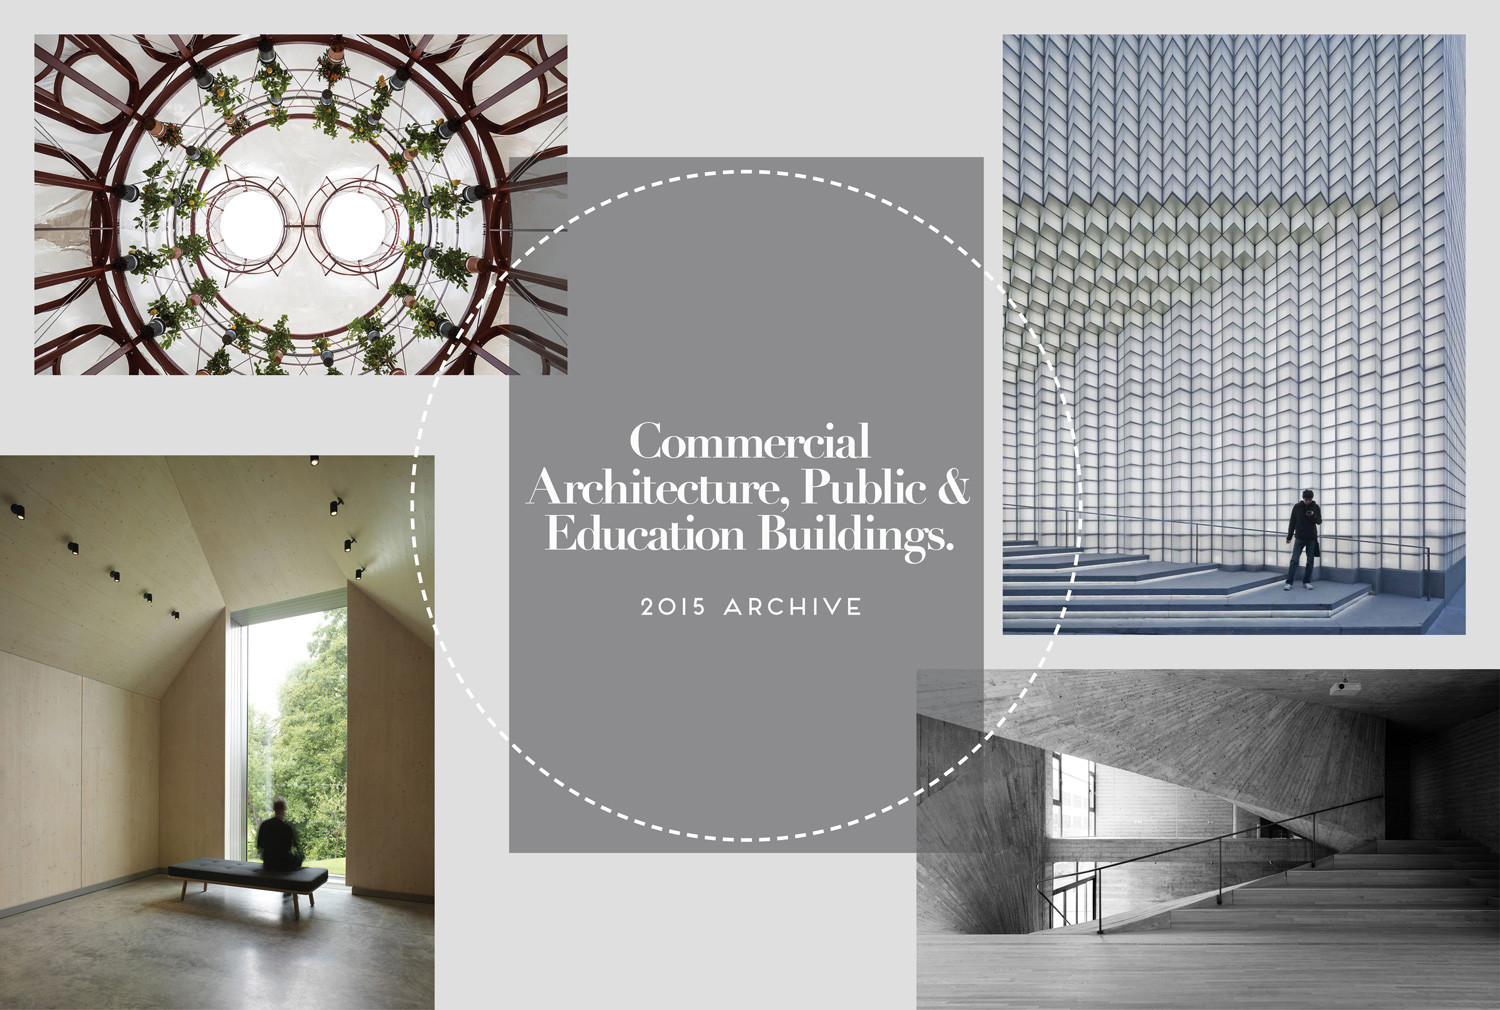 Commercial Architecture, Public & Education Buildings, 2015 Archive | Yellowtrace